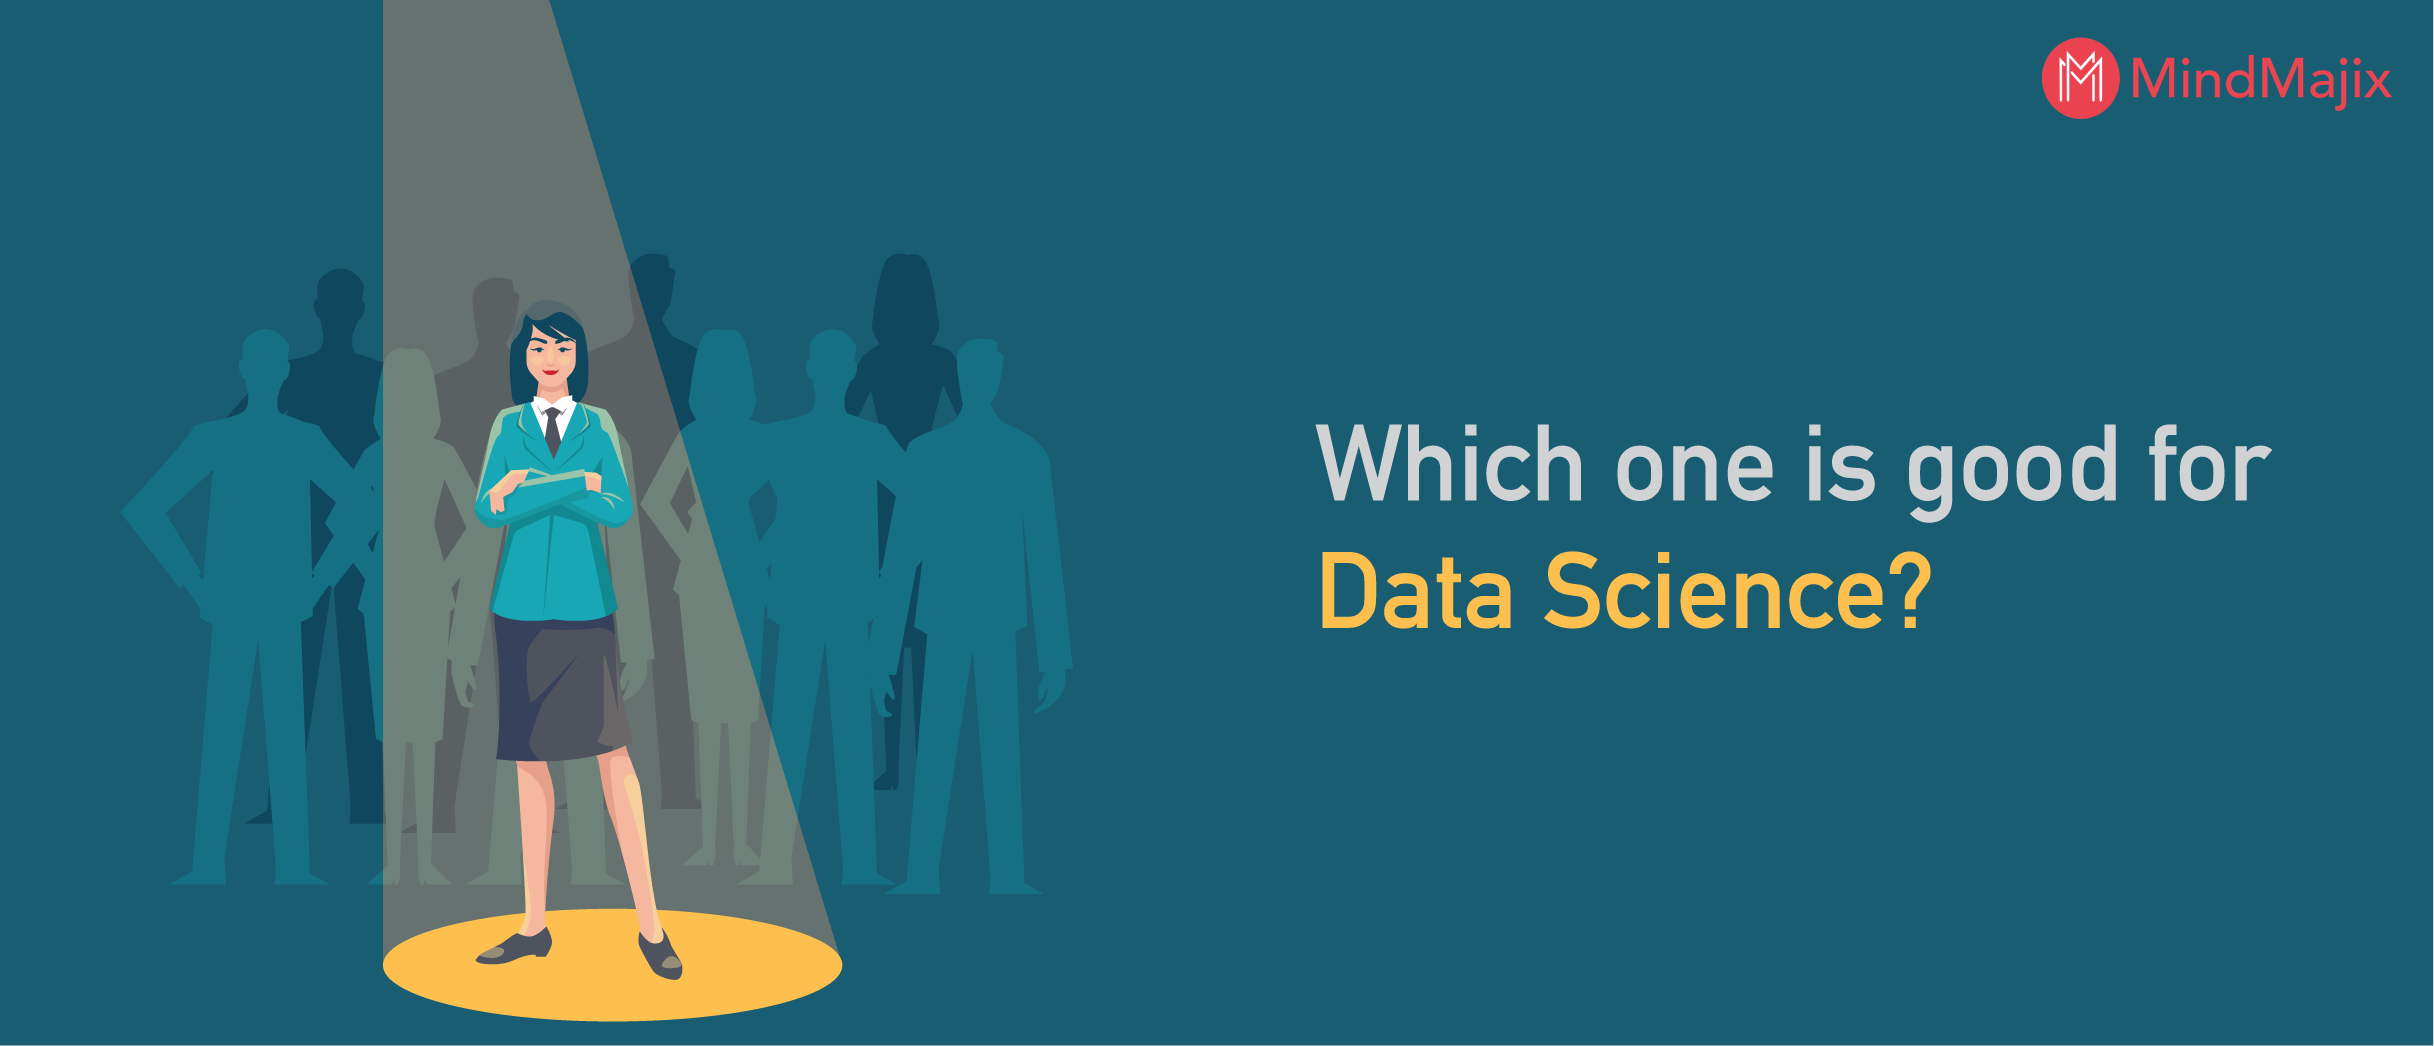 Which one is good for Data Science?